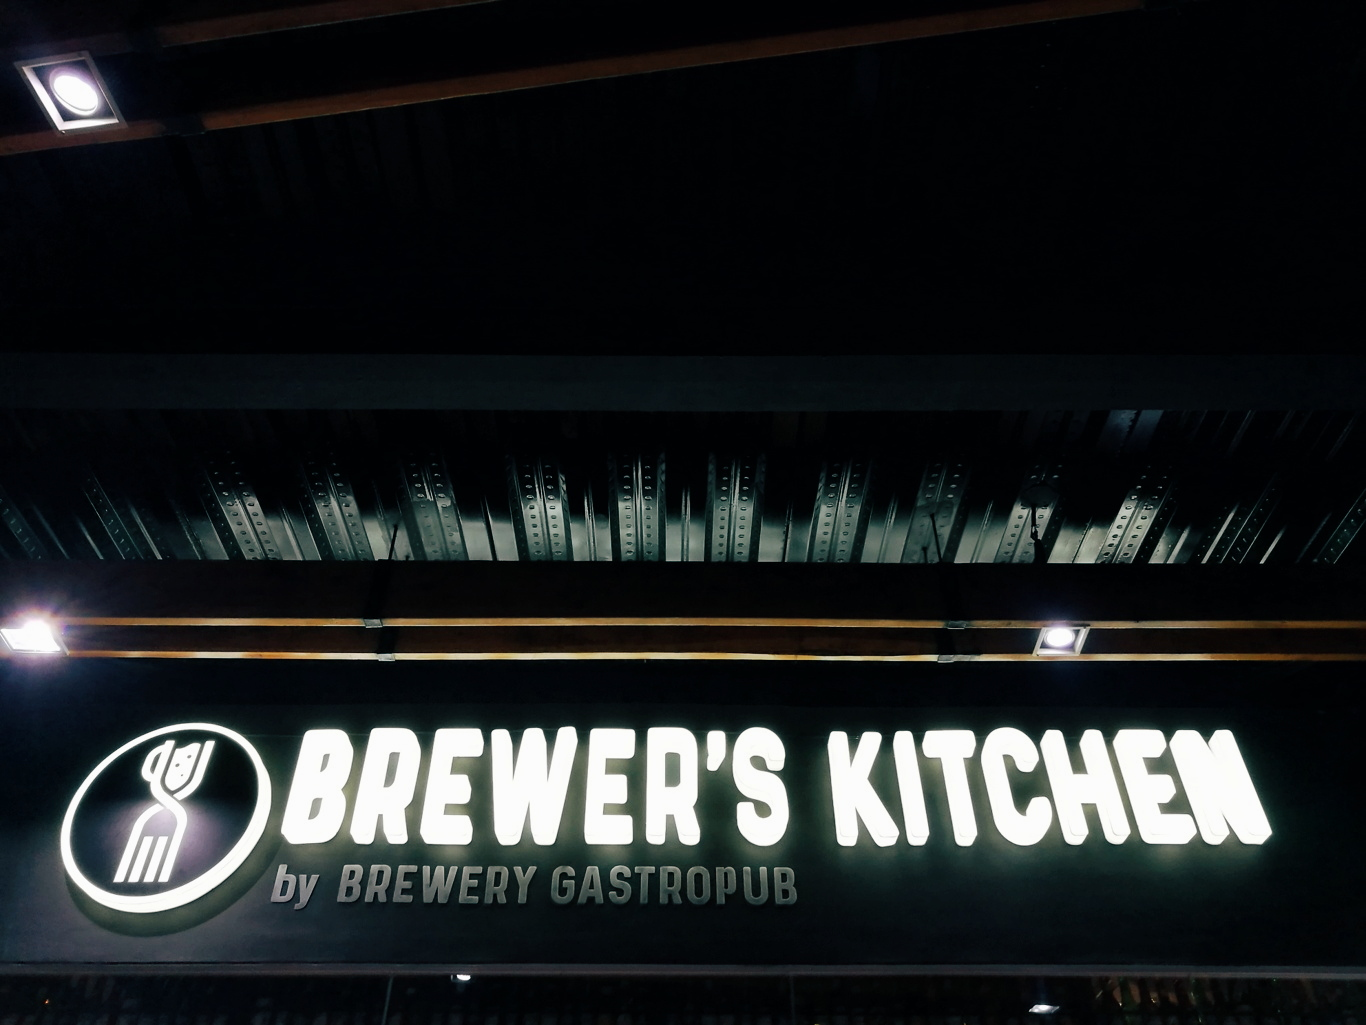 My 6 First Times at Brewer's Kitchen